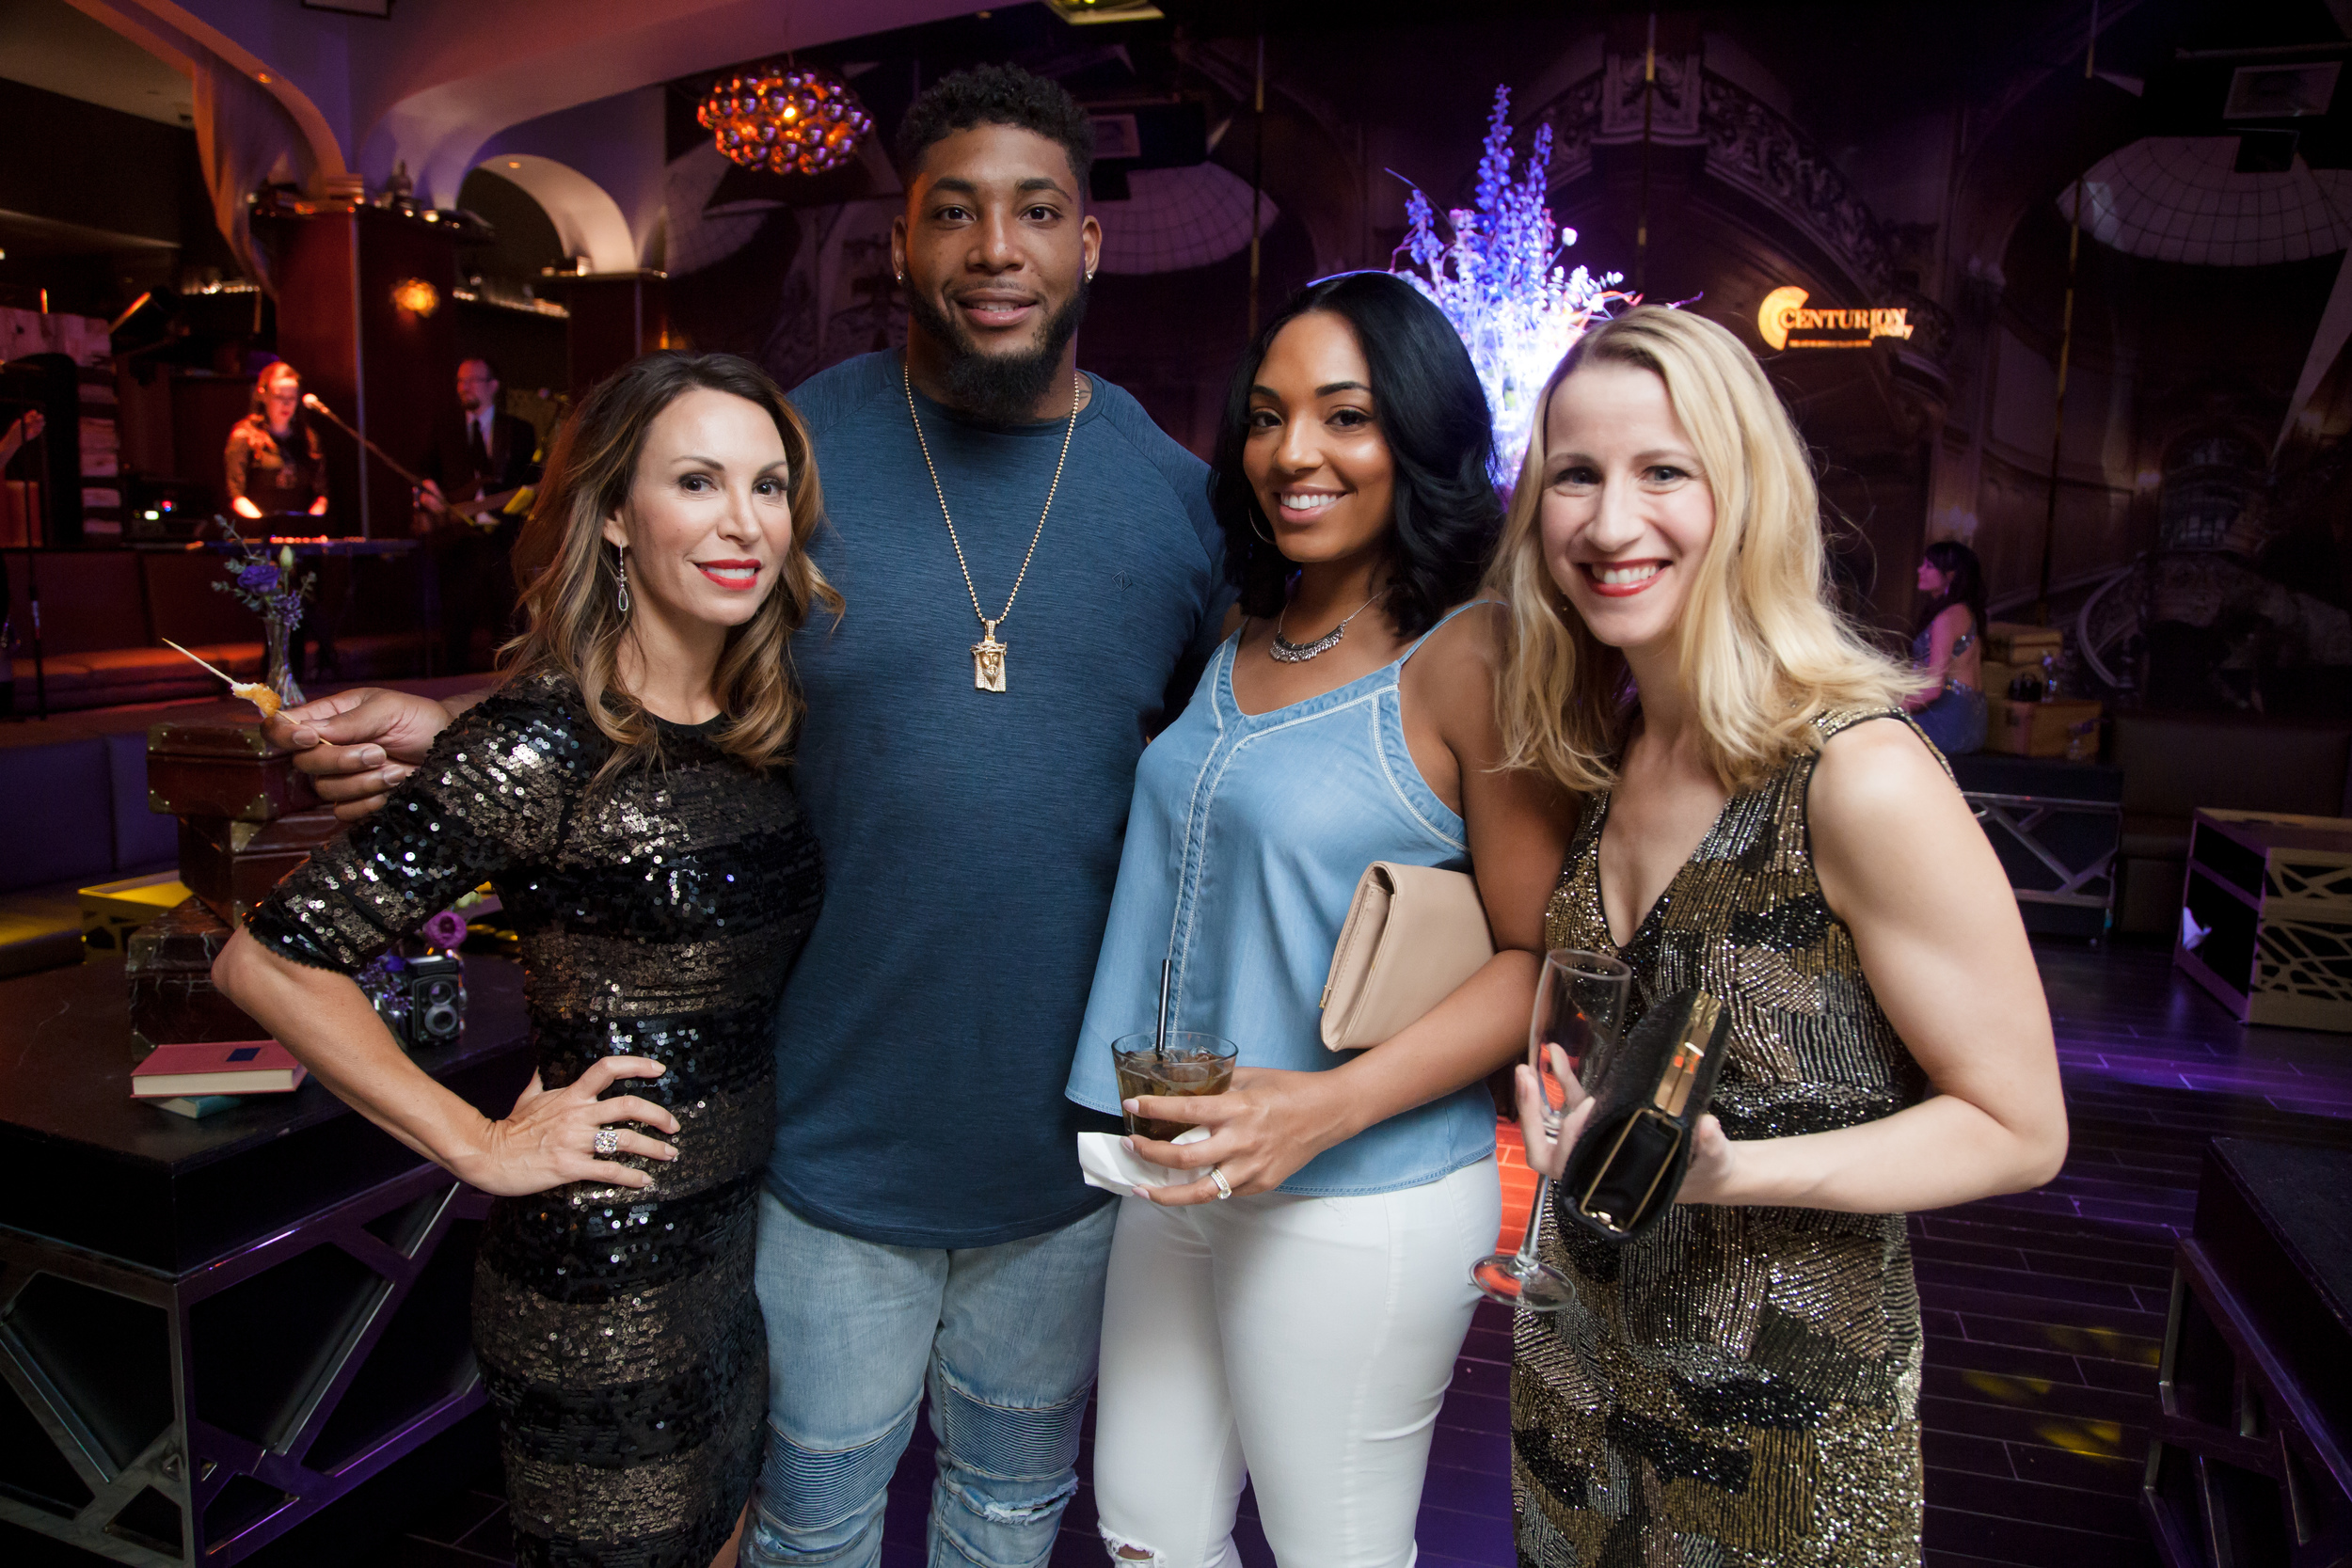 """Special Guest Devon Still and his new wife Asha Joyce, joined the party after their Knot wedding celebrating his daughter Leah's cancer free diagnosis. """"LeahStrong"""